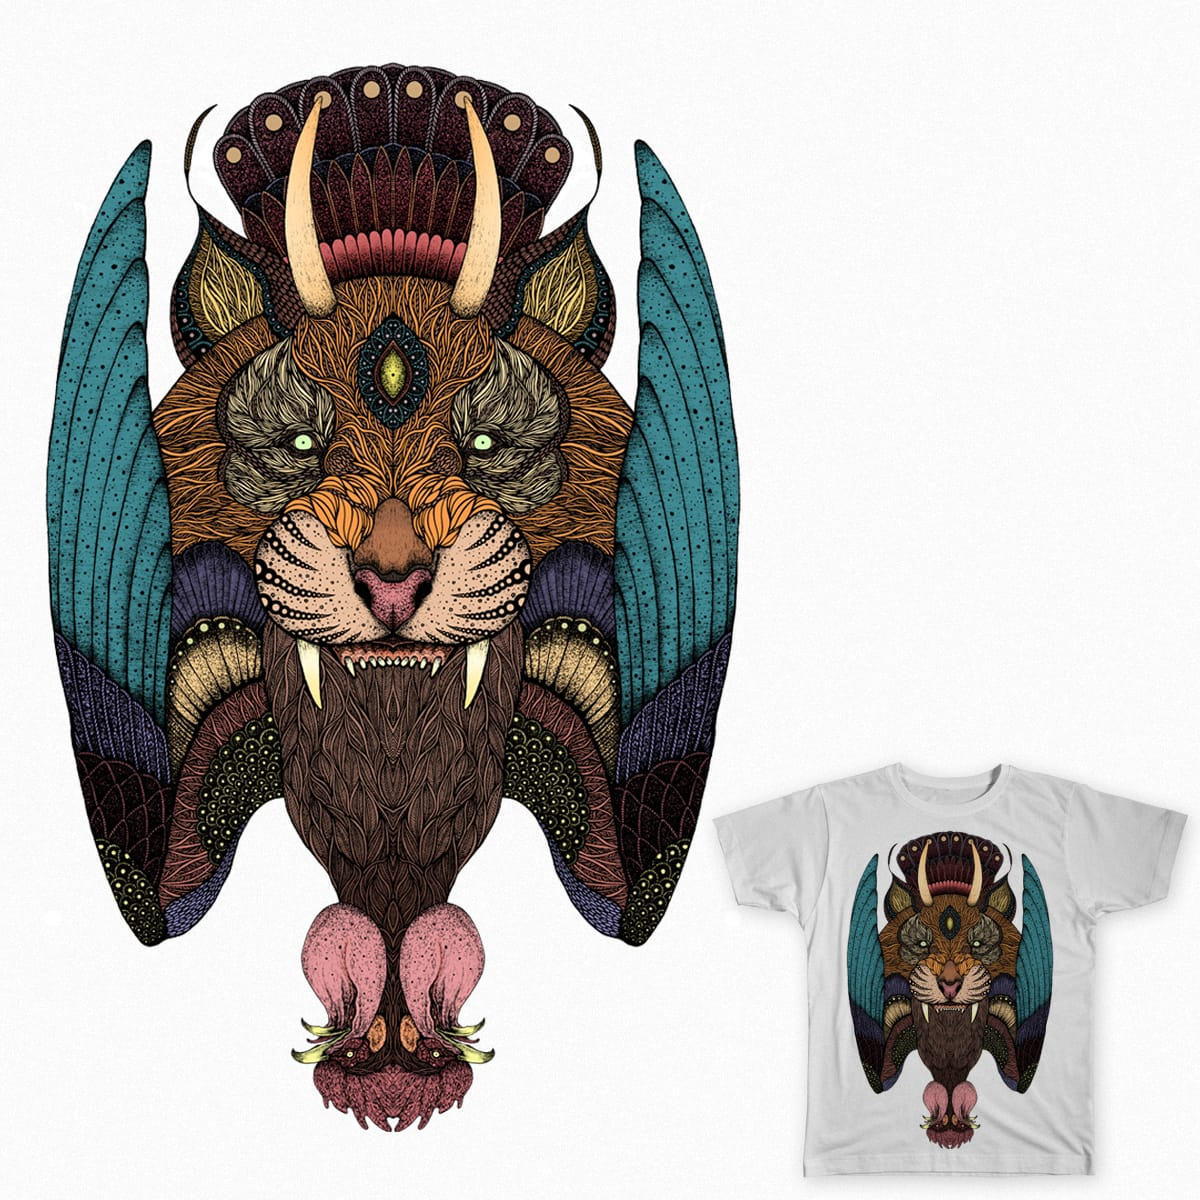 Tiger by bdmolloy on Threadless